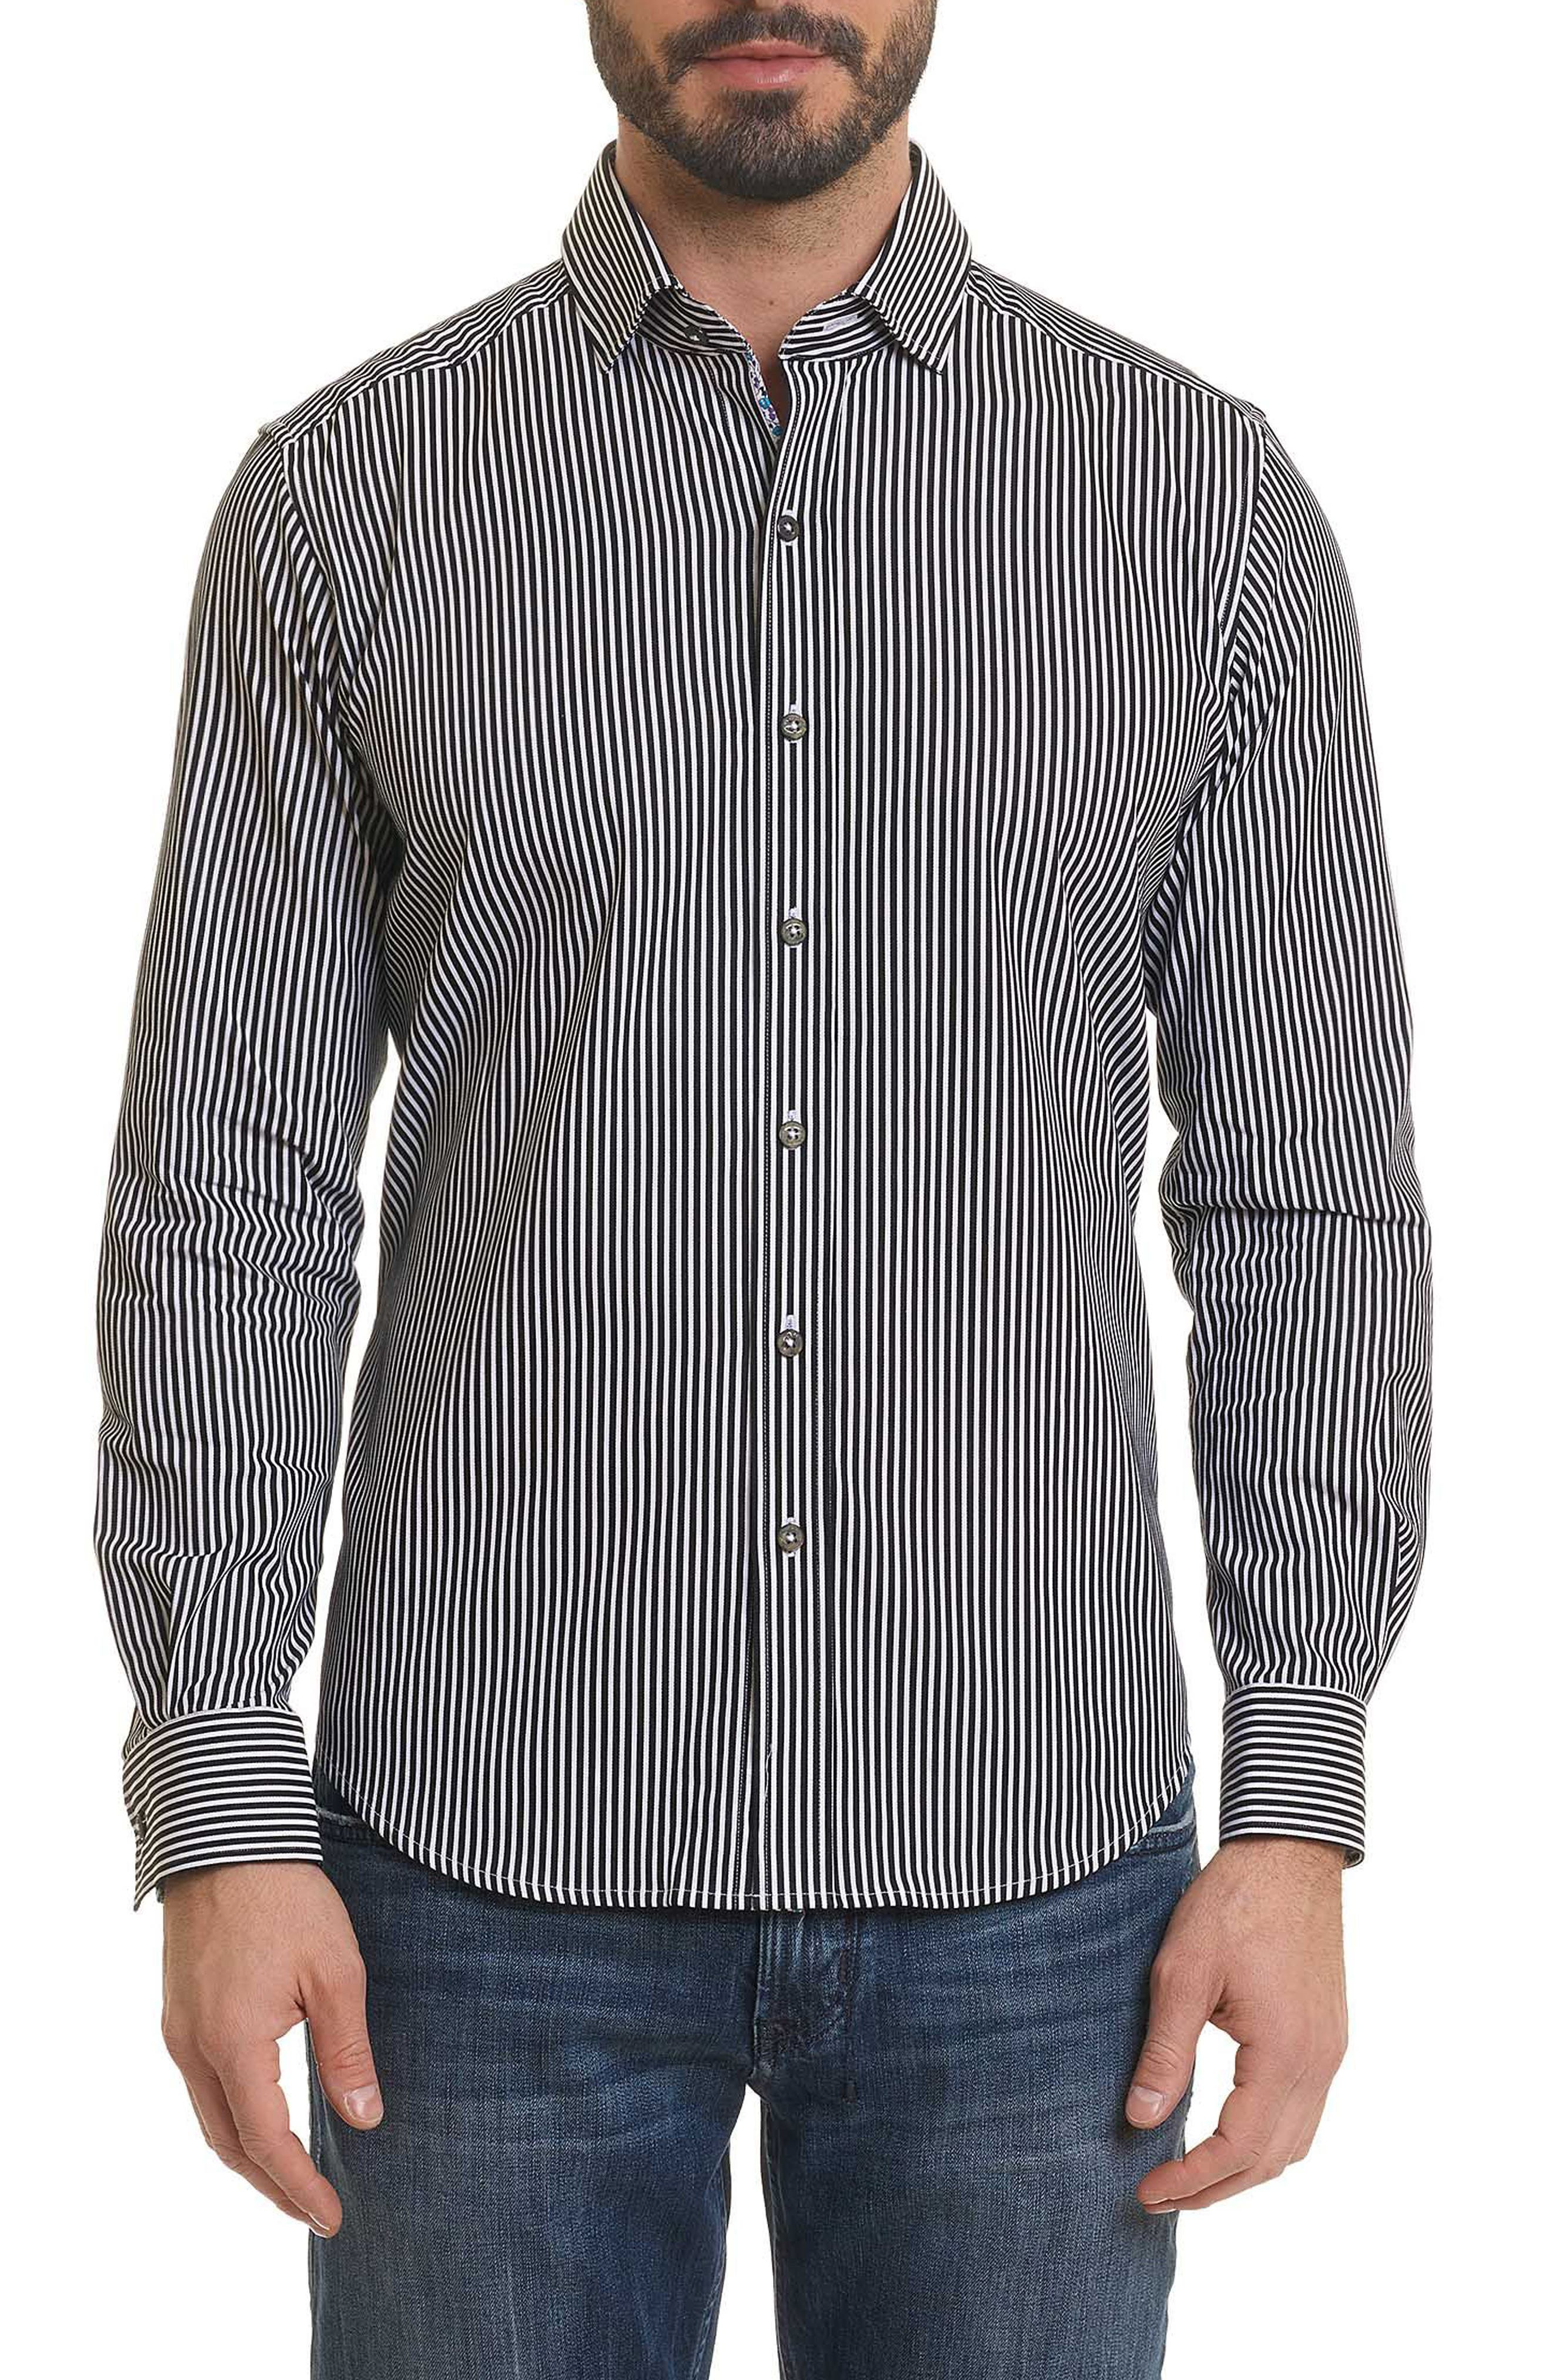 Luther Classic Fit Stripe Sport Shirt,                             Main thumbnail 1, color,                             001